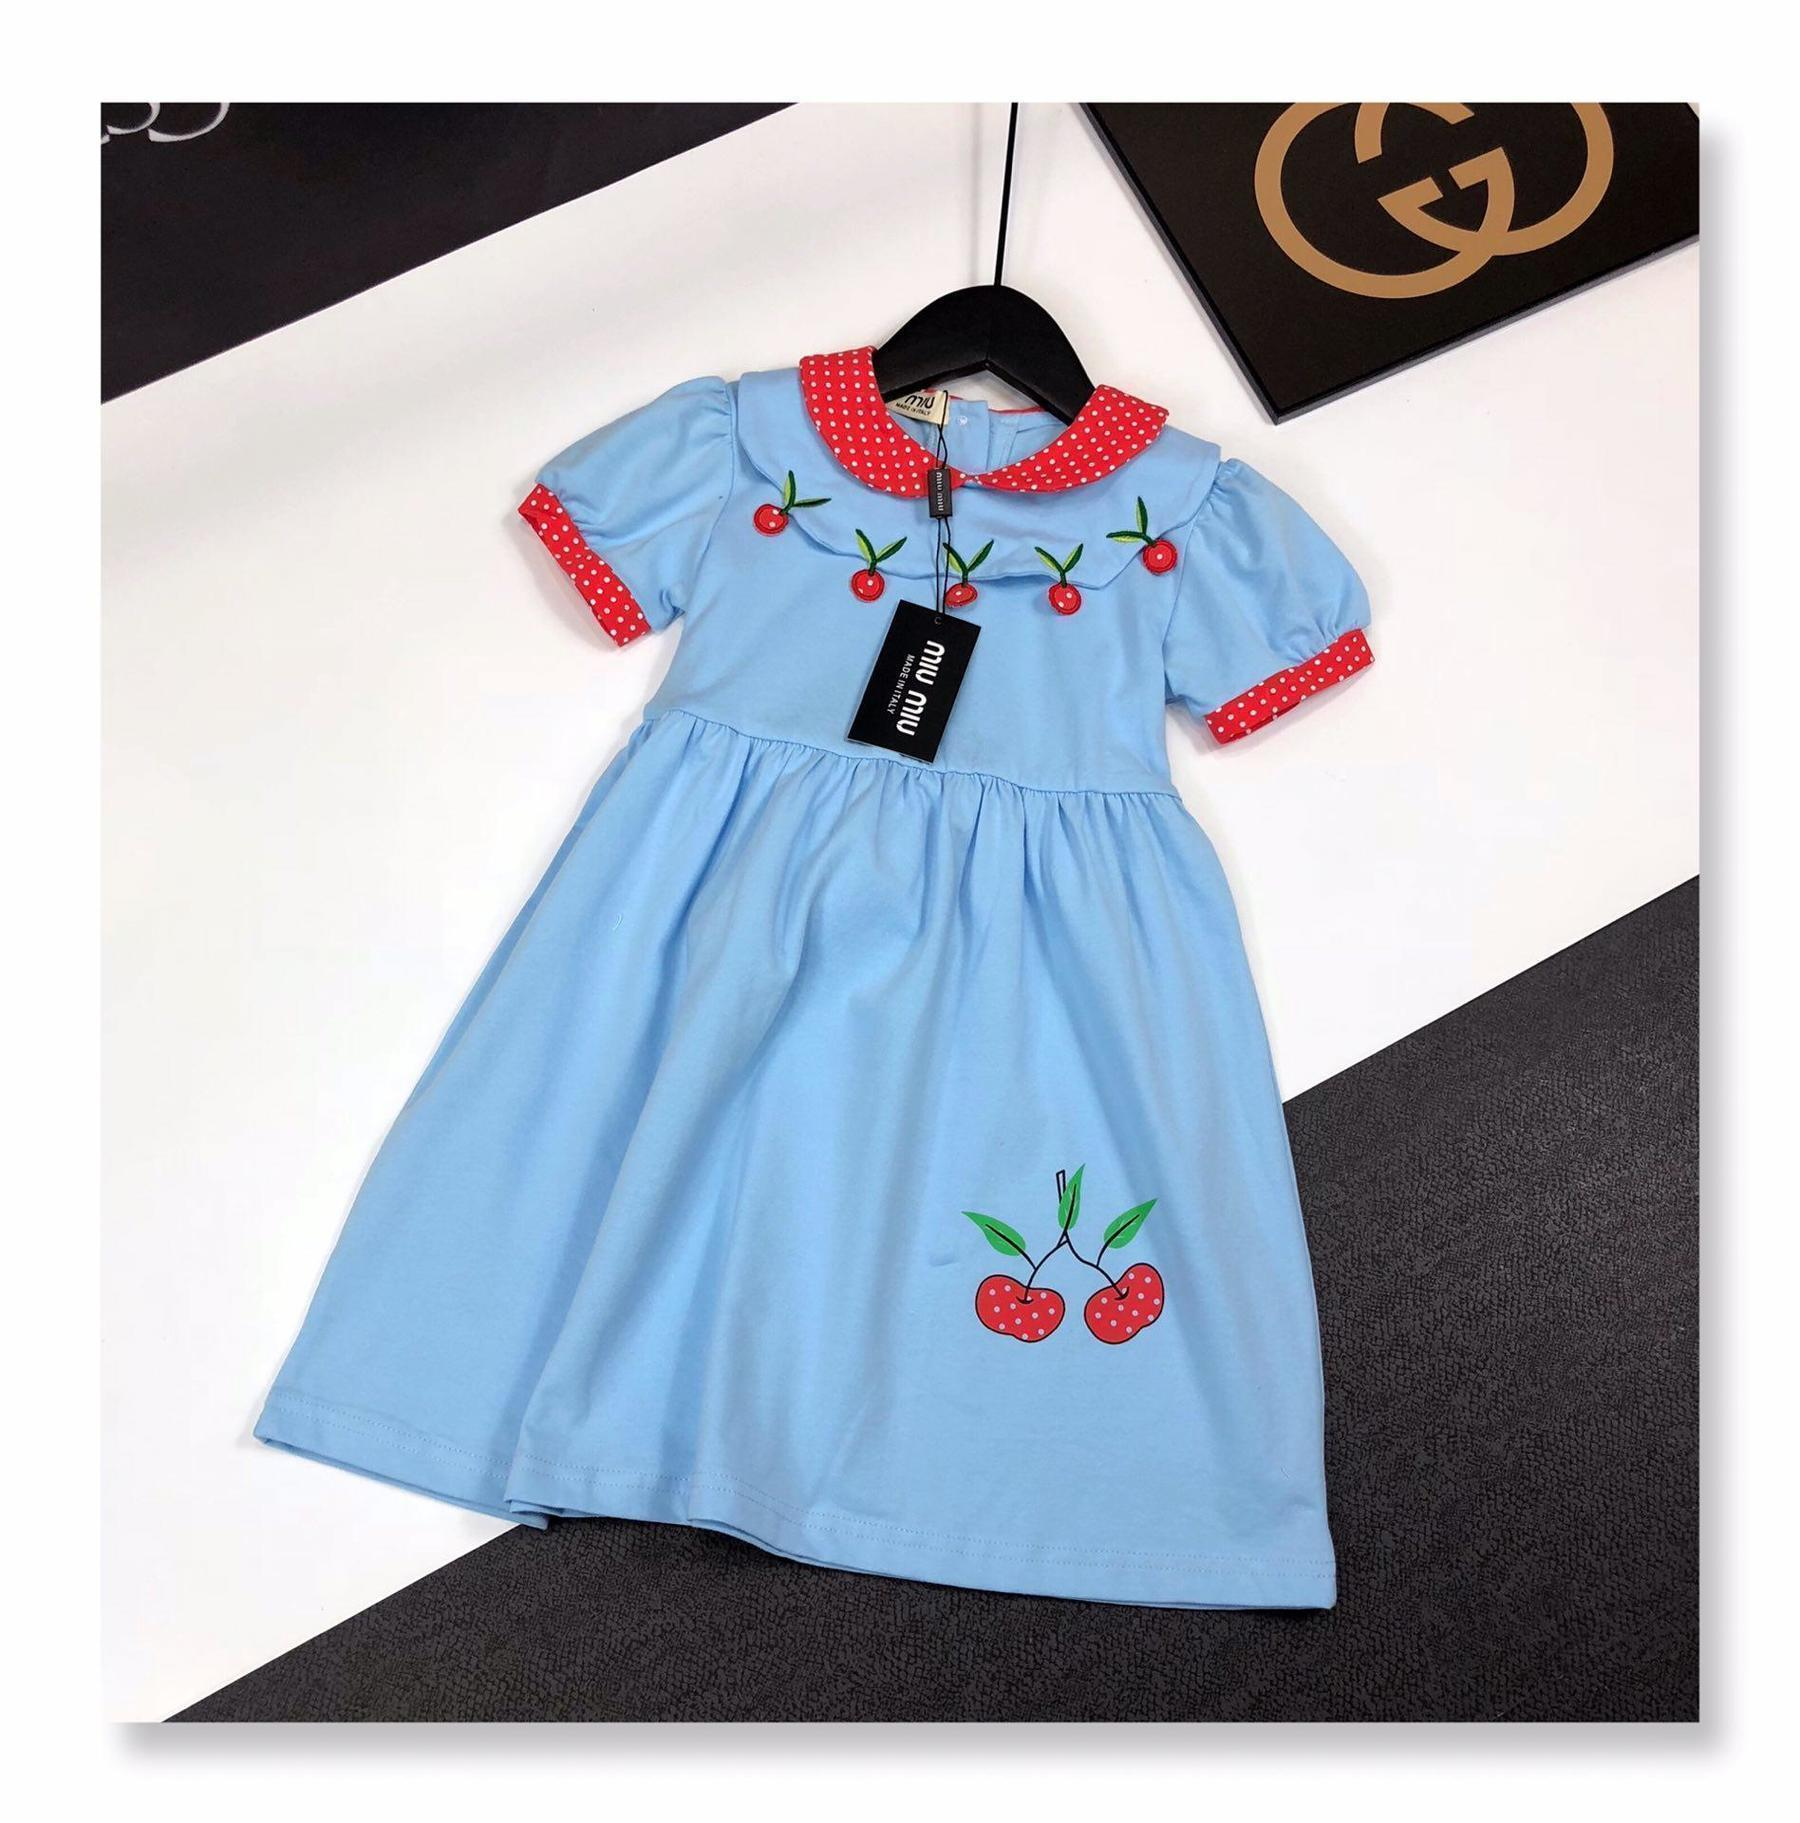 summer dresses kids brand clothes girls dress baby girl clothes kids dress Polka dot stitching cute Skirt girls boutique outfits baby PF-35